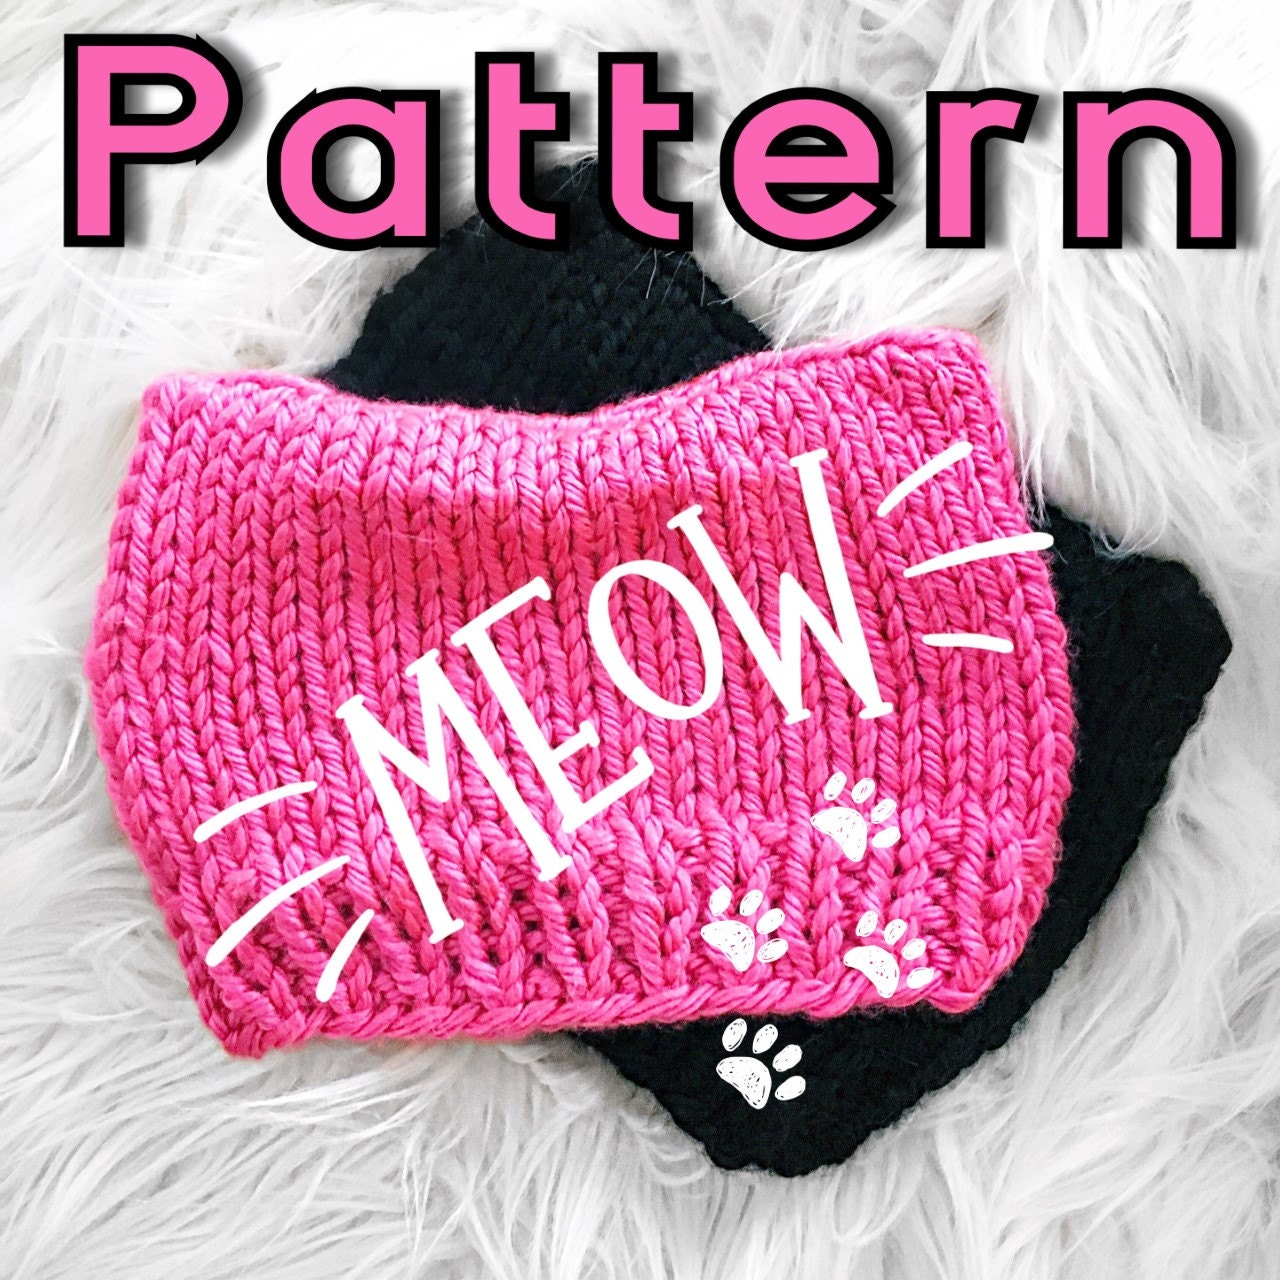 Knitting patterns crochetstorie knitting pattern cat beanie pattern cat hat pattern easy knit pattern bankloansurffo Gallery